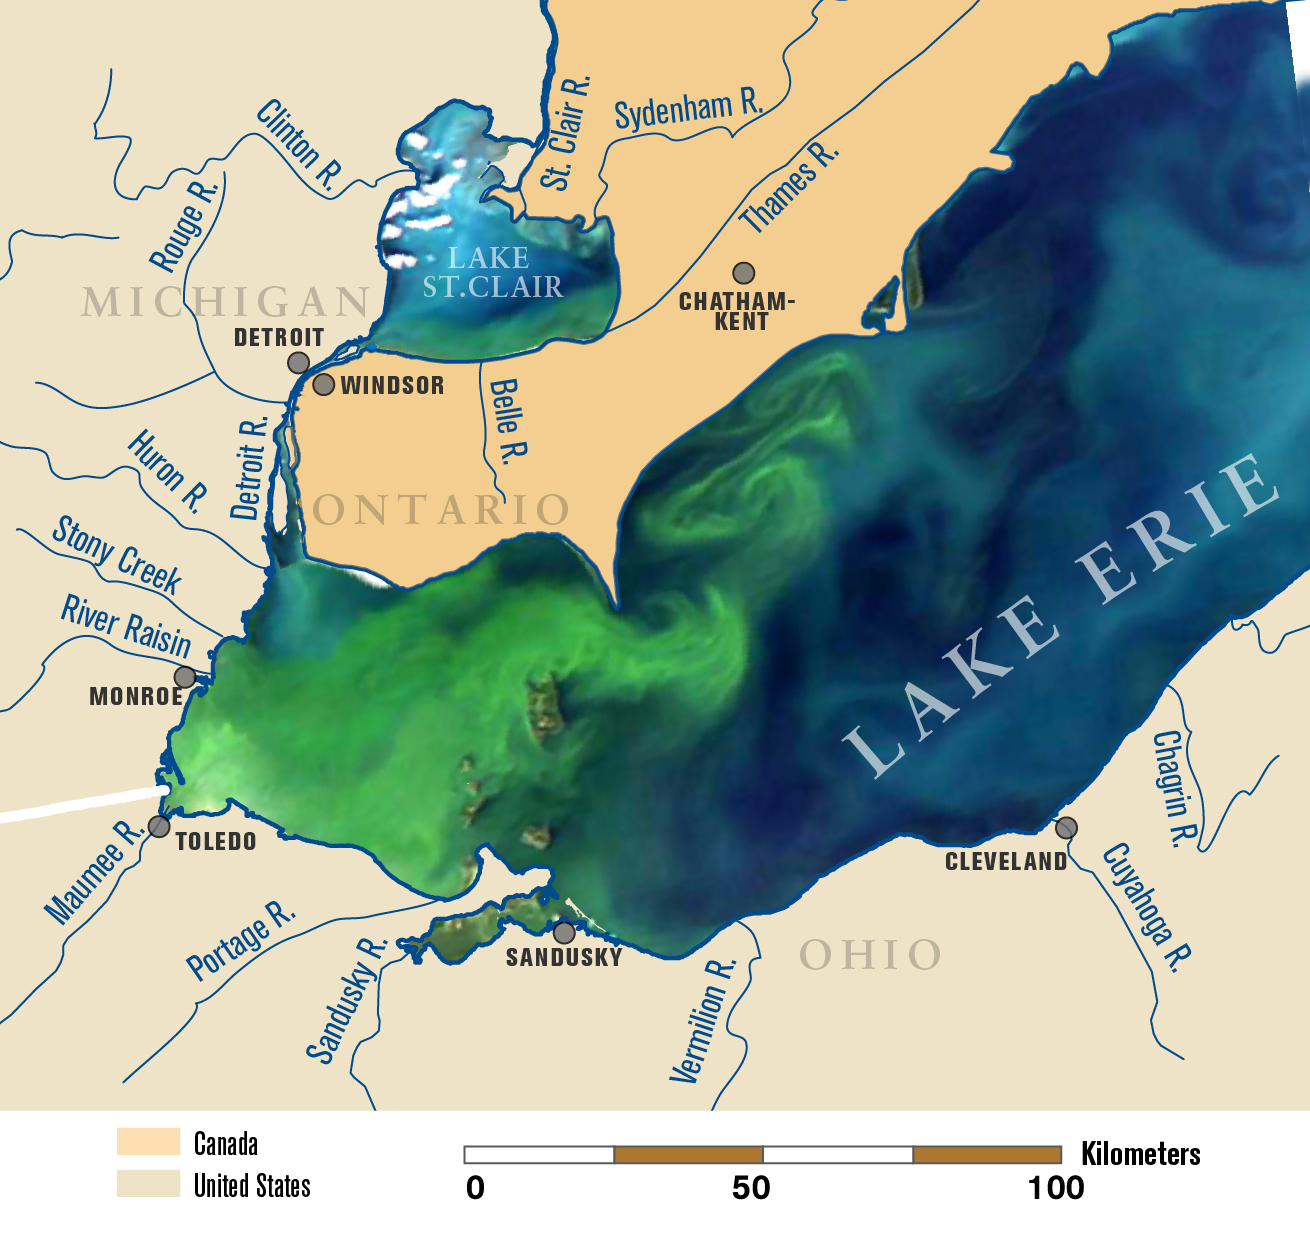 recordbreaking  lake erie algae bloom may be sign of things to come. the new normal recordbreaking  lake erie algae bloom may be